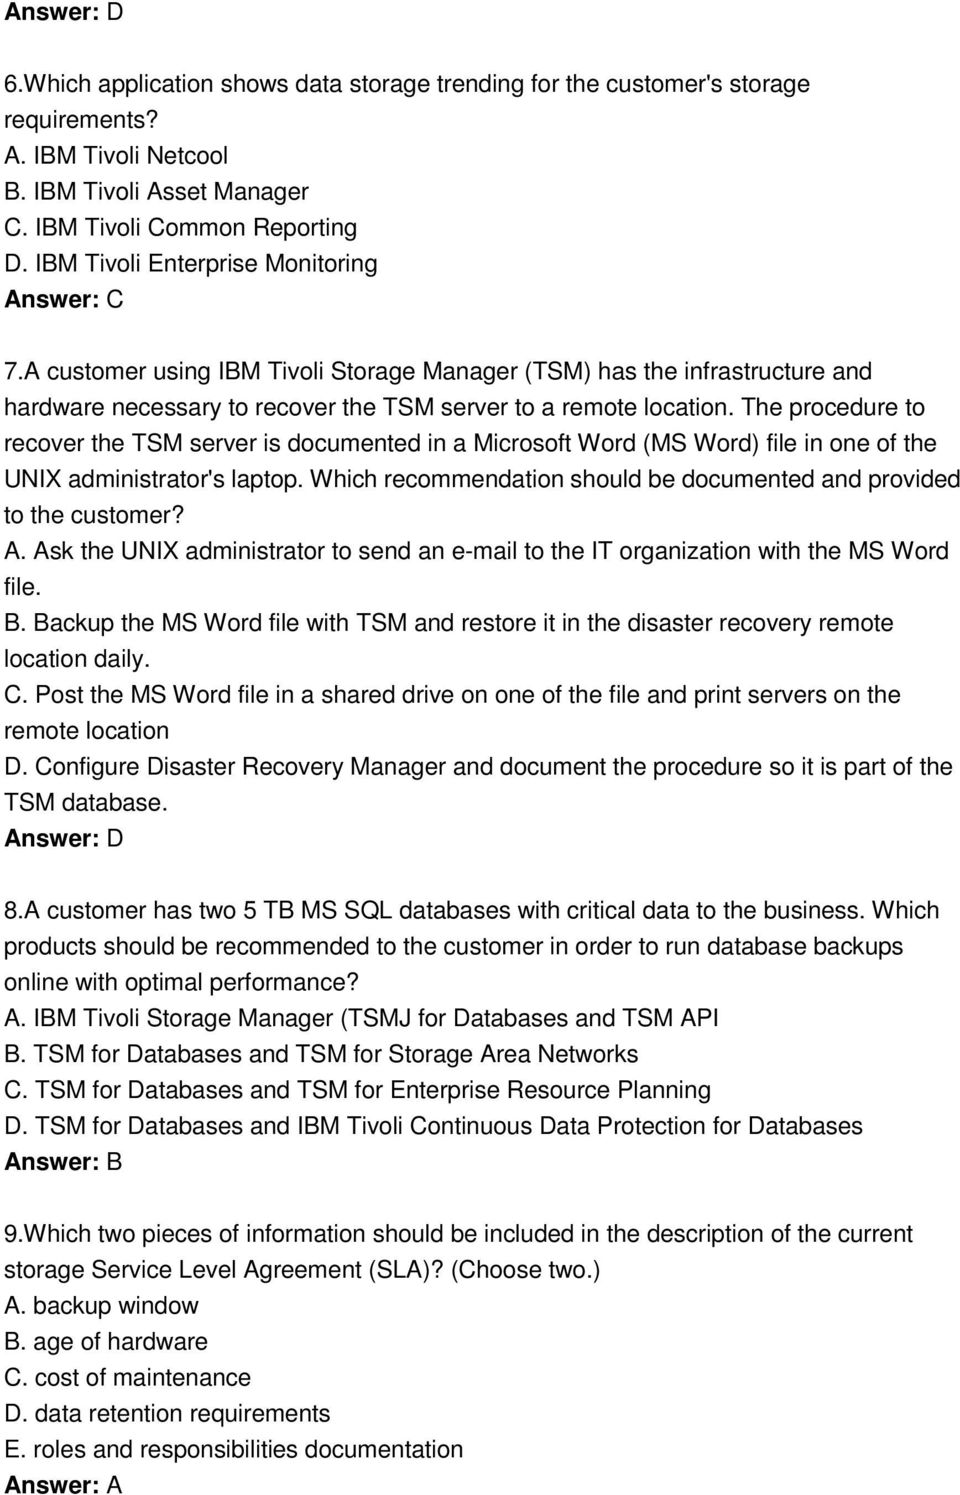 The procedure to recover the TSM server is documented in a Microsoft Word (MS Word) file in one of the UNIX administrator's laptop.